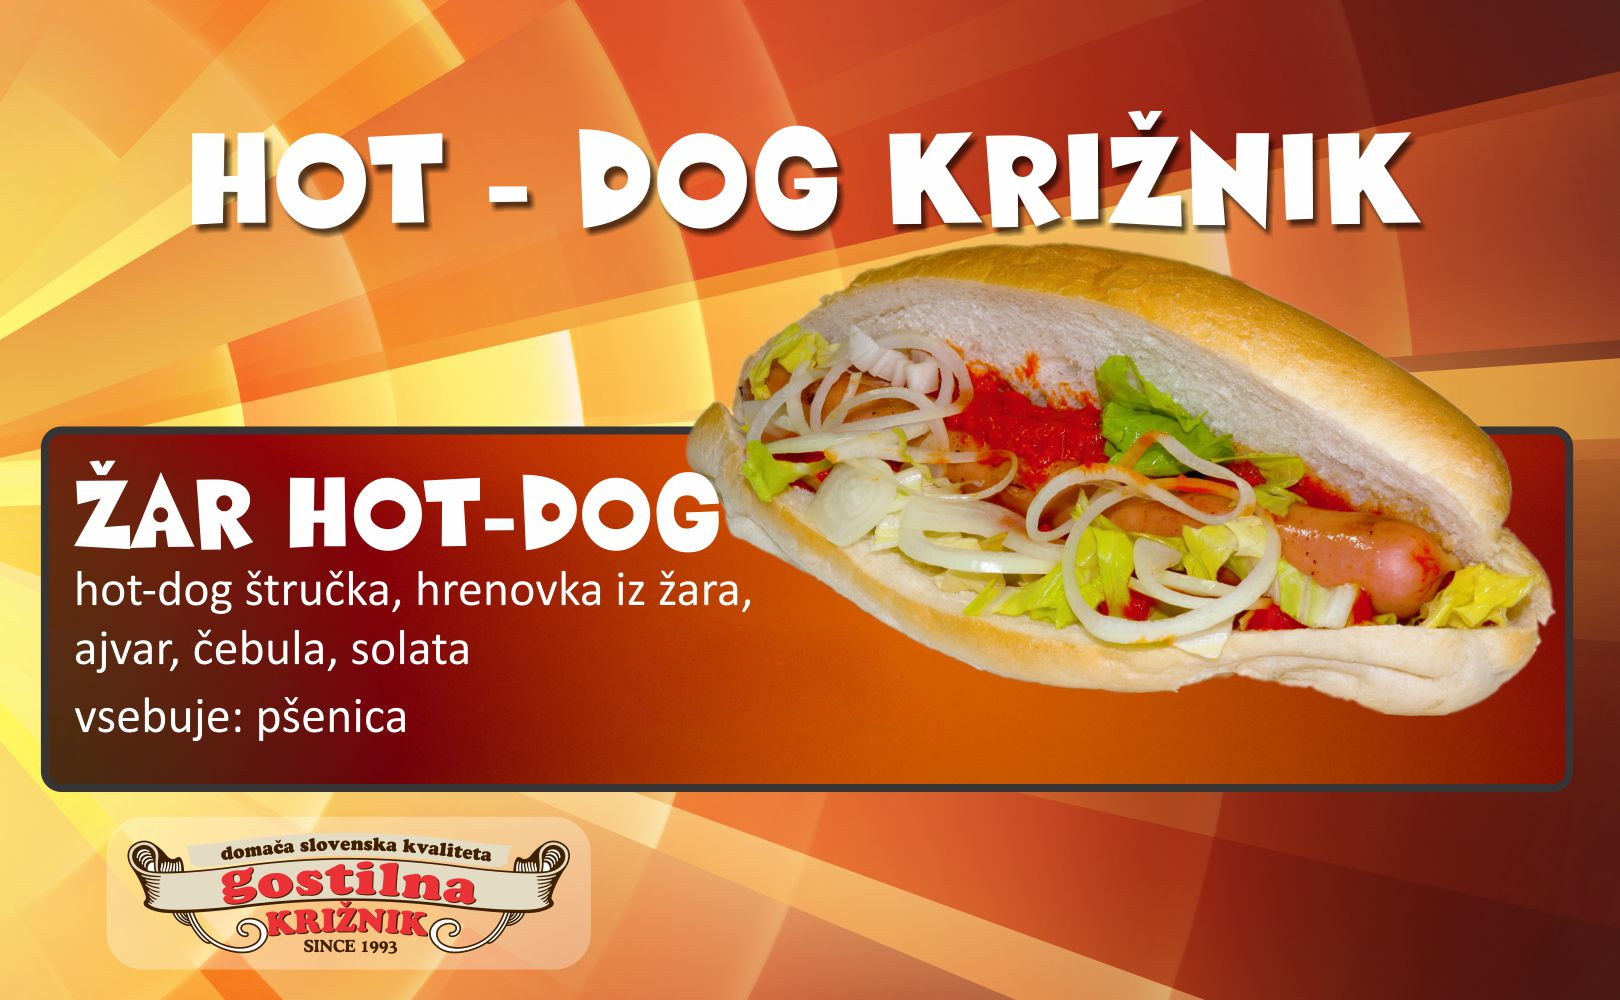 Žar hot-dog